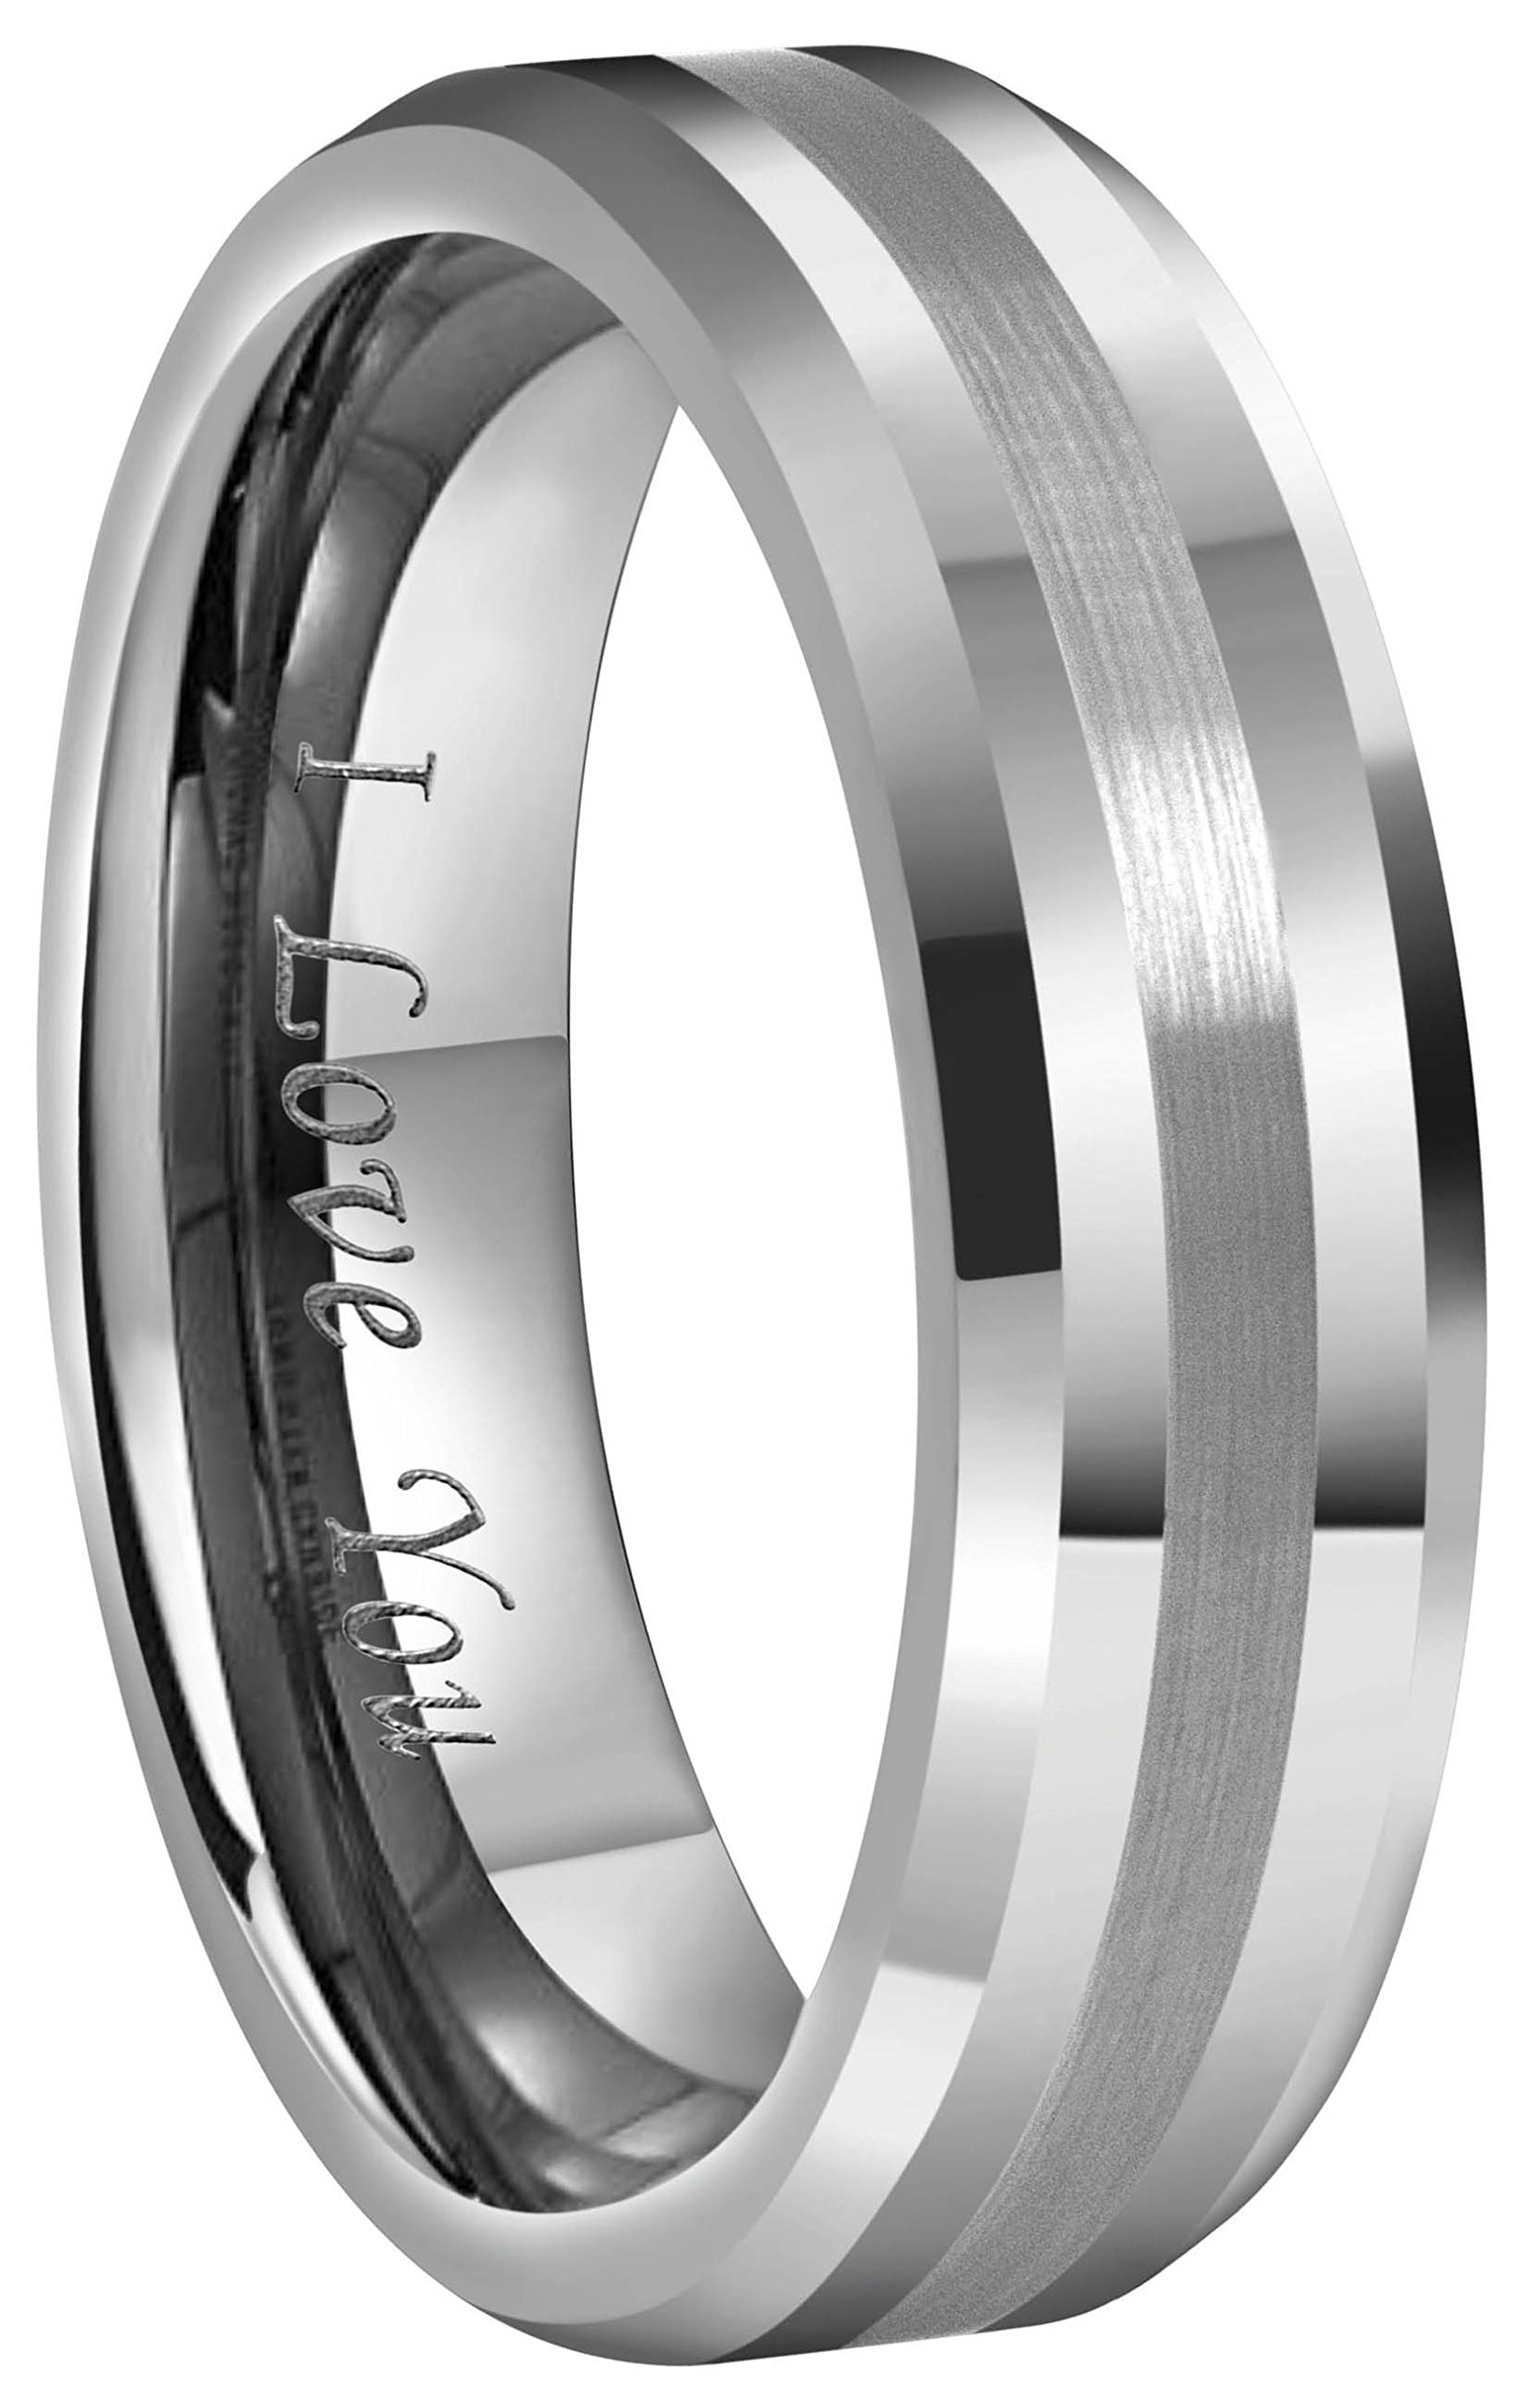 Crownal 6mm 8mm 10mm Tungsten Carbide Wedding Band Ring Engraved ''I Love You'' Men Women Brushed Strip Beveled Edge(6mm,4.5)